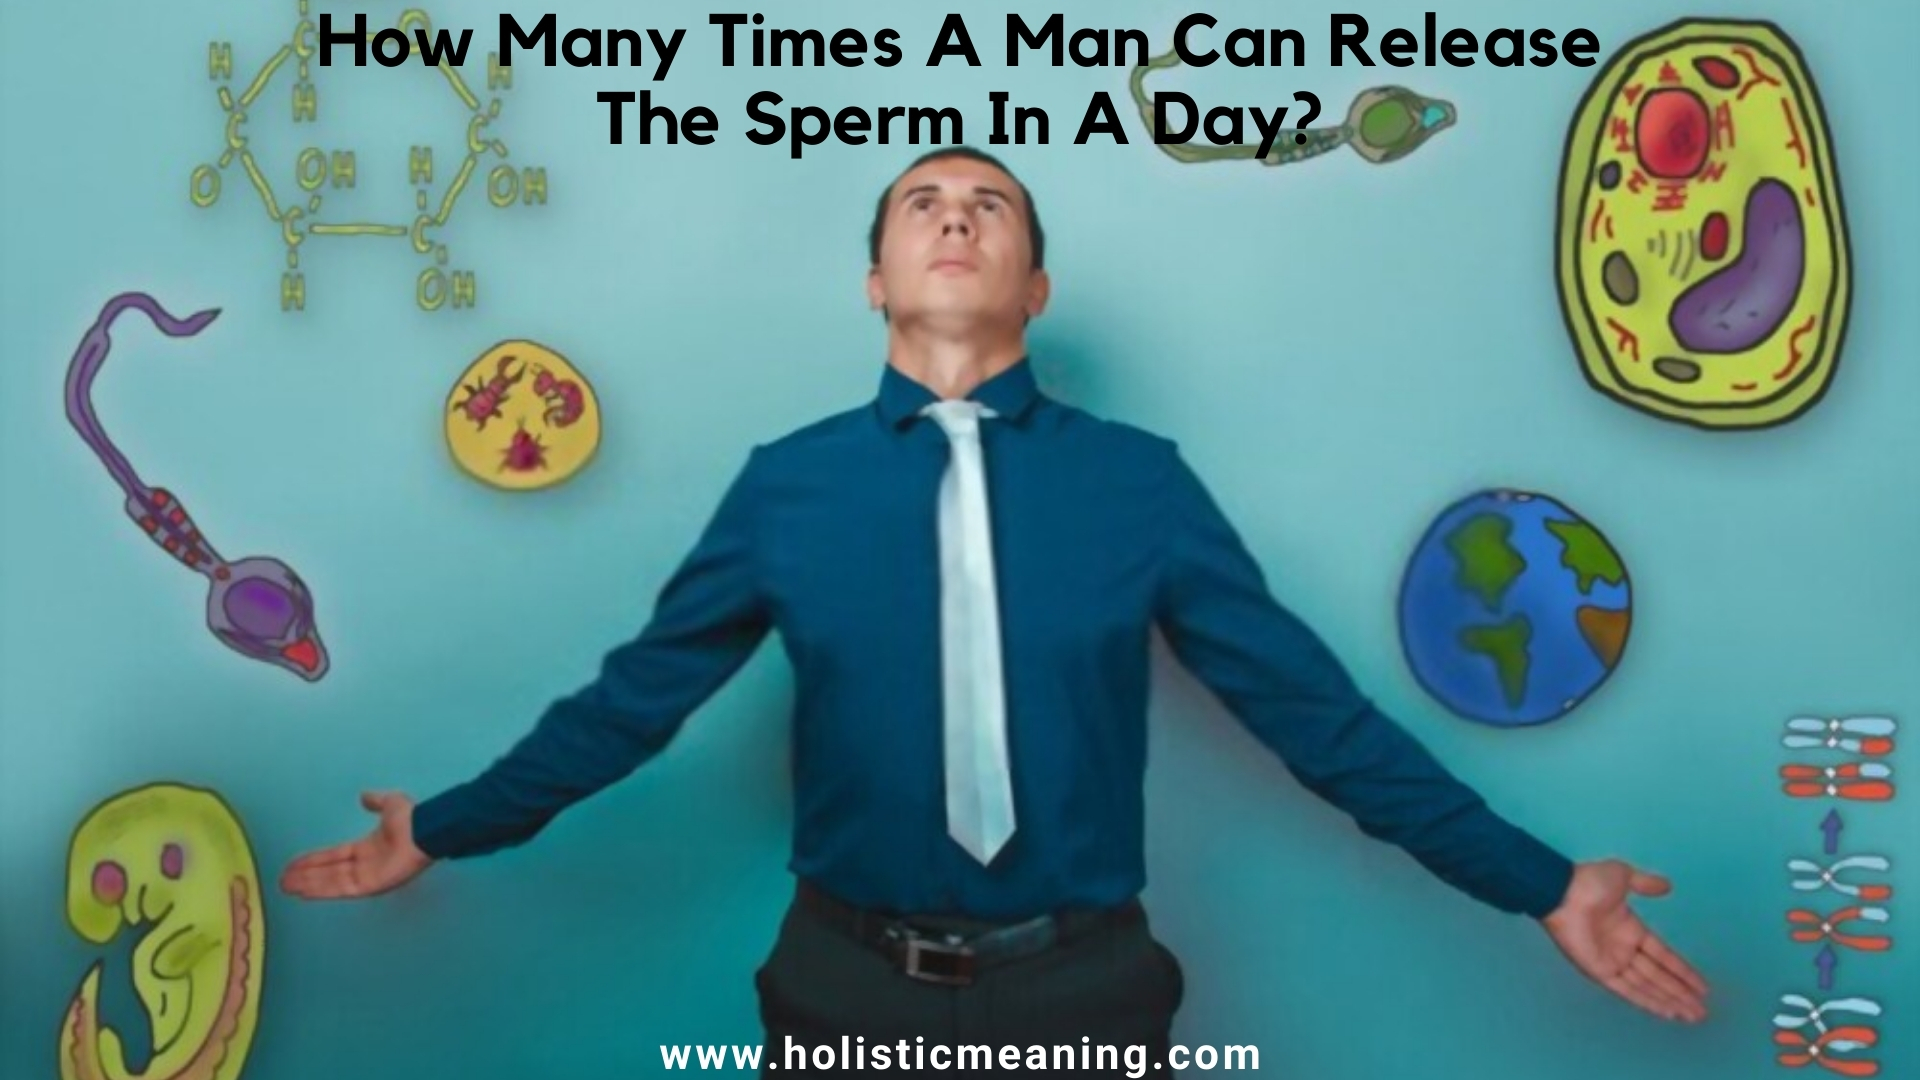 How Many Times A Man Can Release The Sperm In A Day?